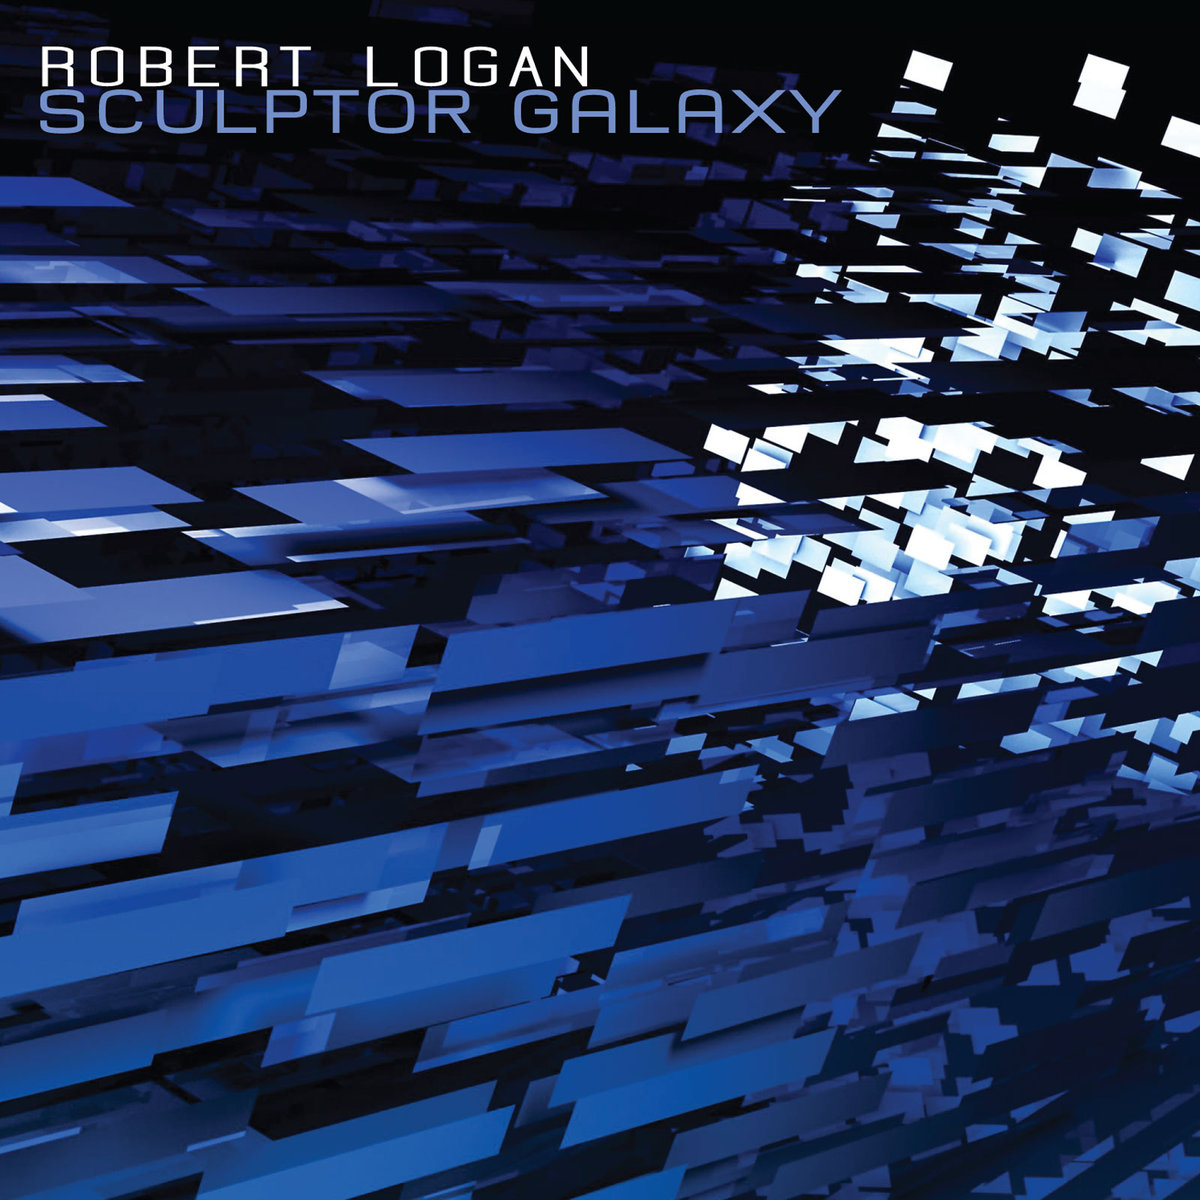 Robert LoganSculptor Galaxy-Robert Logan-Art